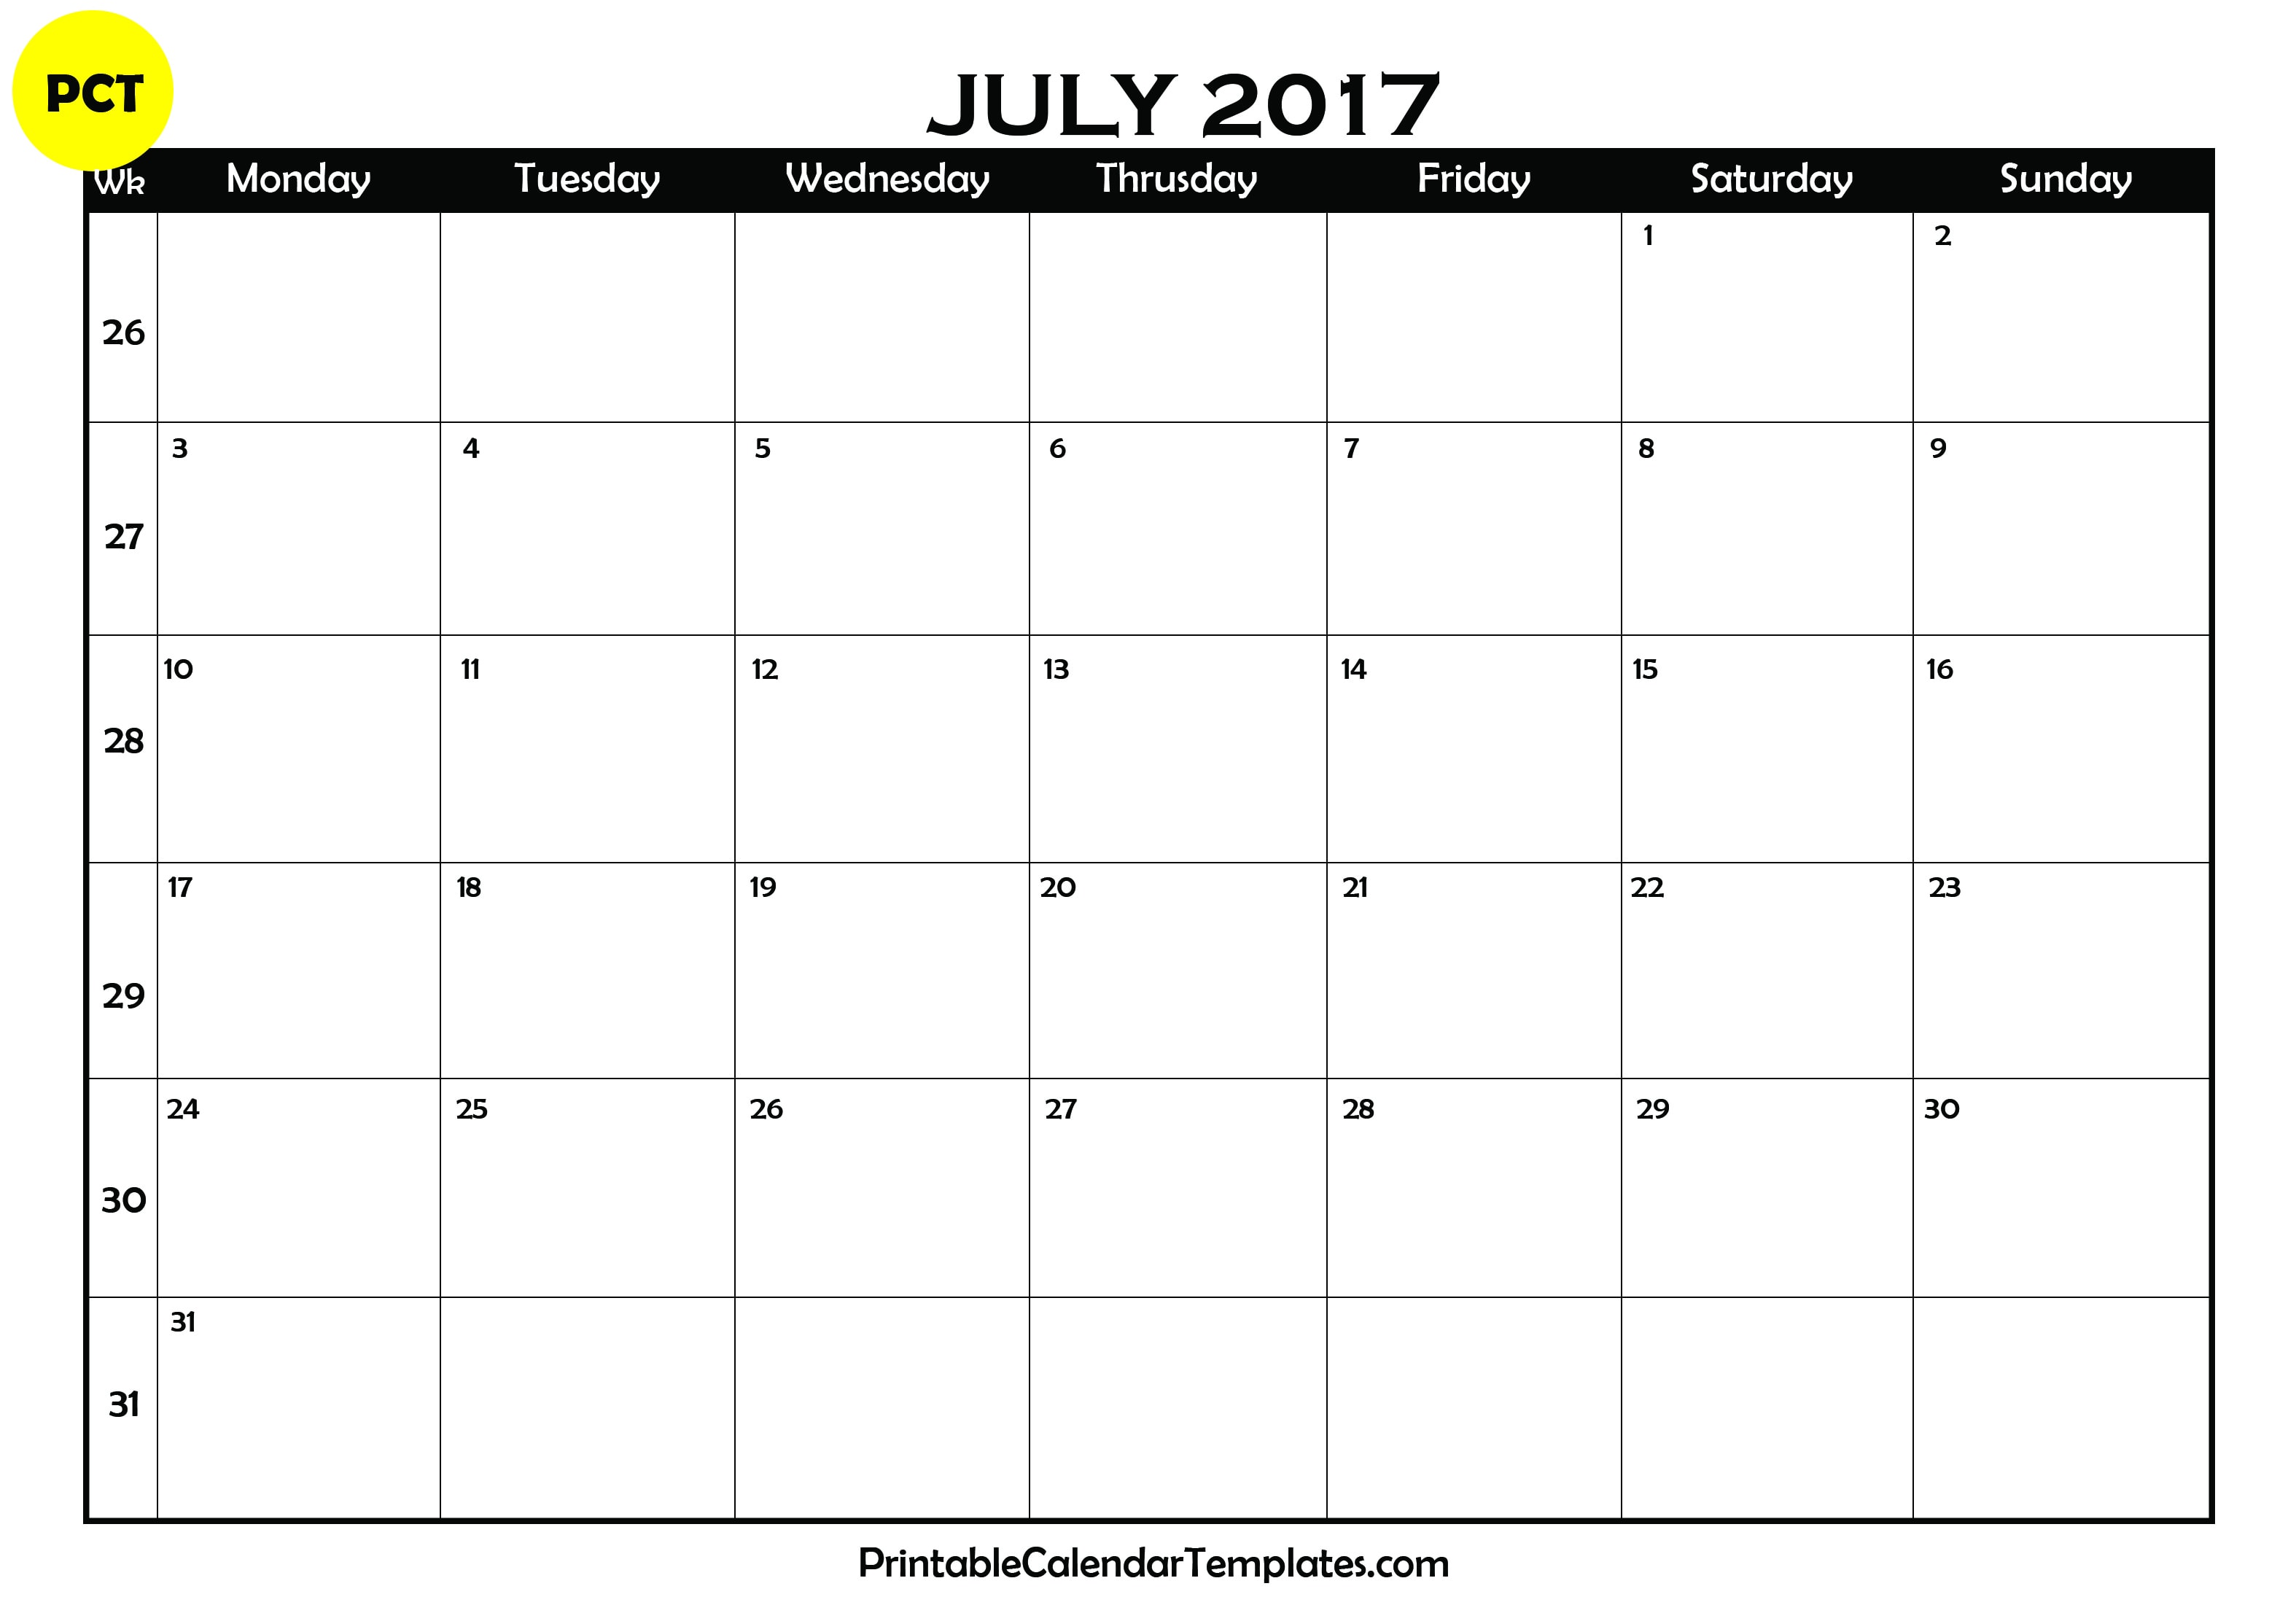 Calendar Printables Blank : July calendar printable templates